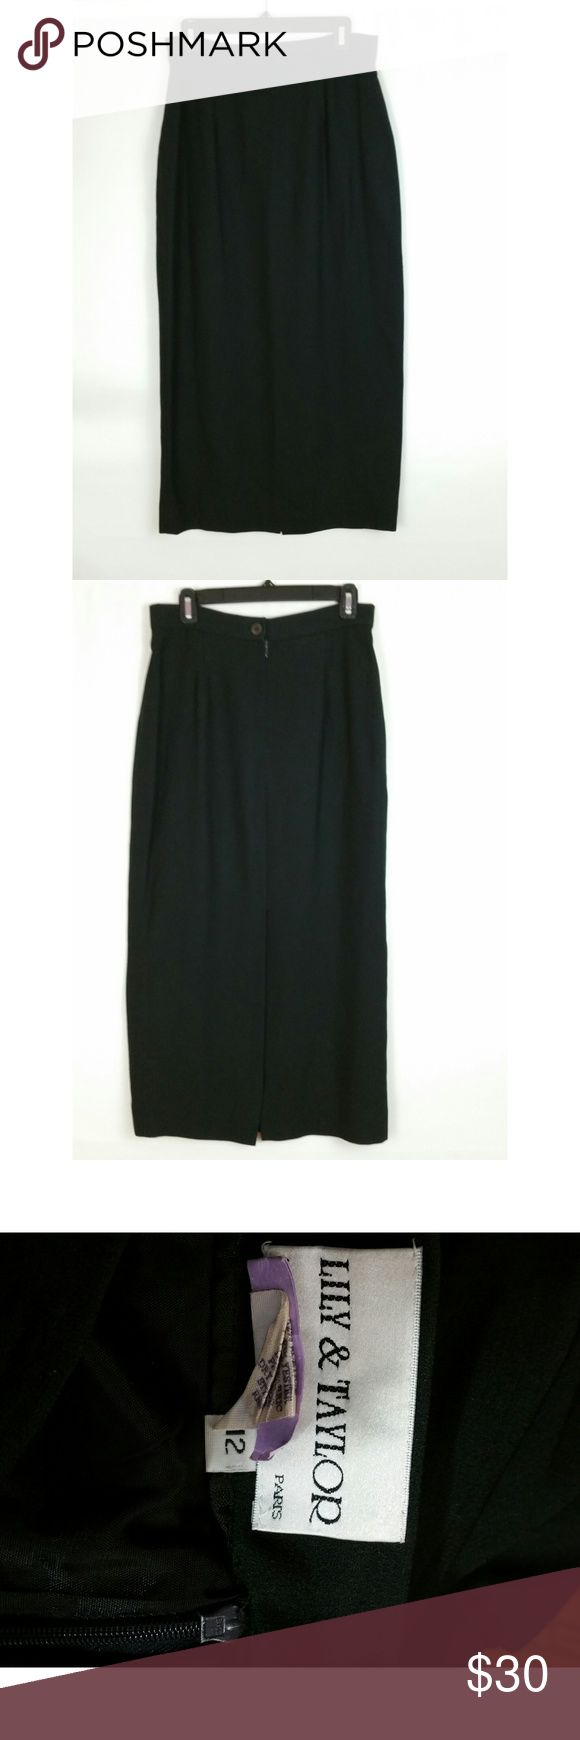 """Lily & Taylor Size 12 Long Black Pencil Skirt Lily & Taylor Paris Size  12 52% acetate, 48% polyester Lined Back zipper Dry clean Beautiful Please check out my other items.  I love to bundle!  Measurements laying flat:  Waist:  15"""" Hips:  19.5"""" Length:  33.75"""" Lily & Taylor Skirts Pencil"""